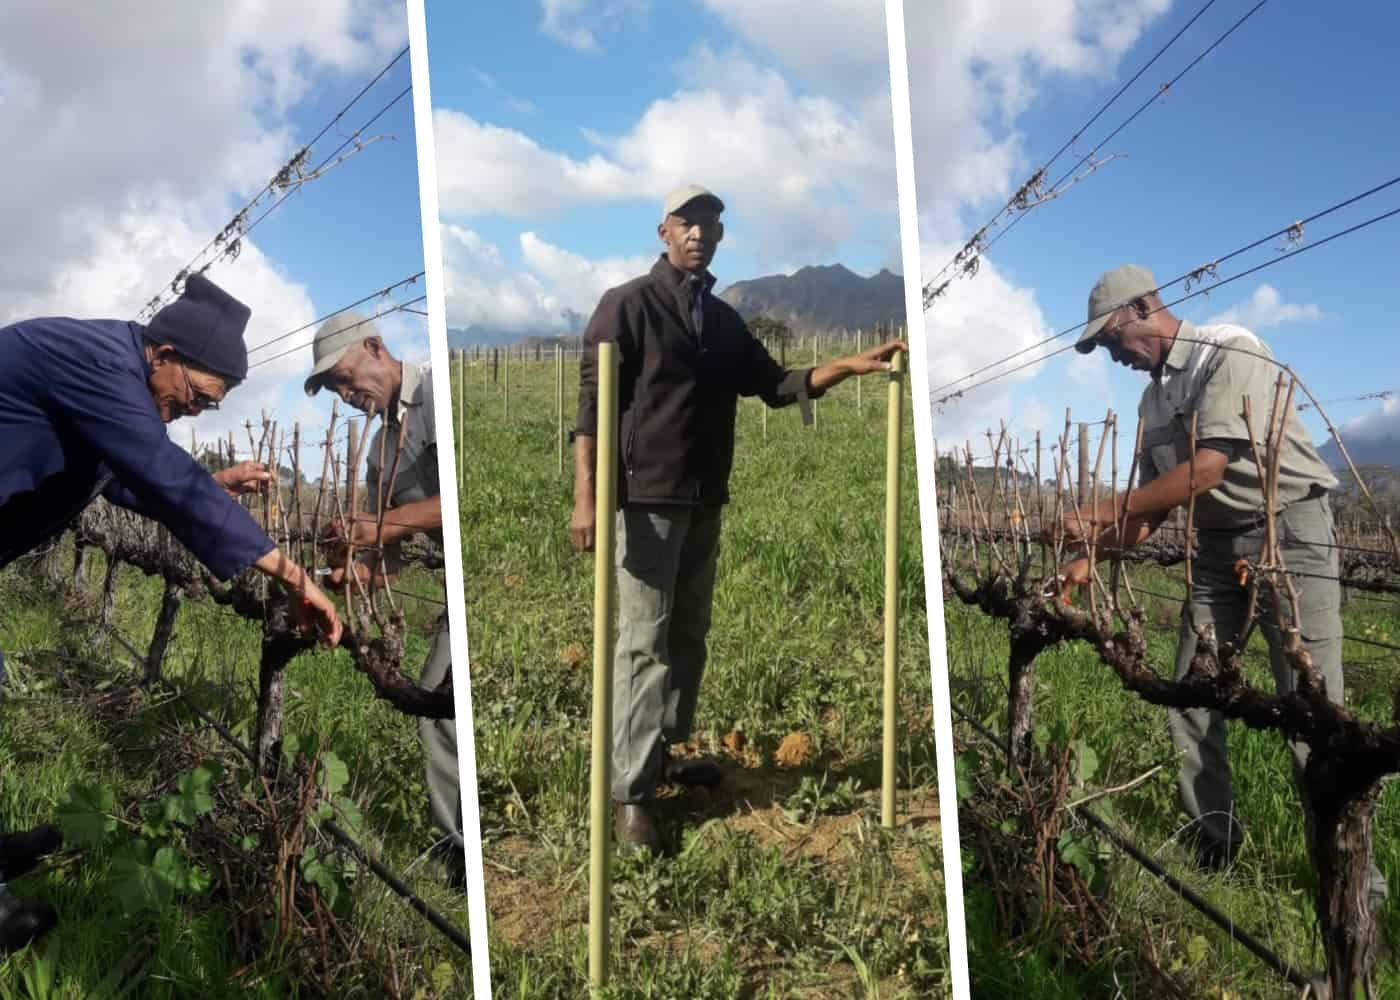 Christie Davids is an award winning agriworker who was born and raised on Packwood Farm in Franschhoek, where his parents worked and lived.